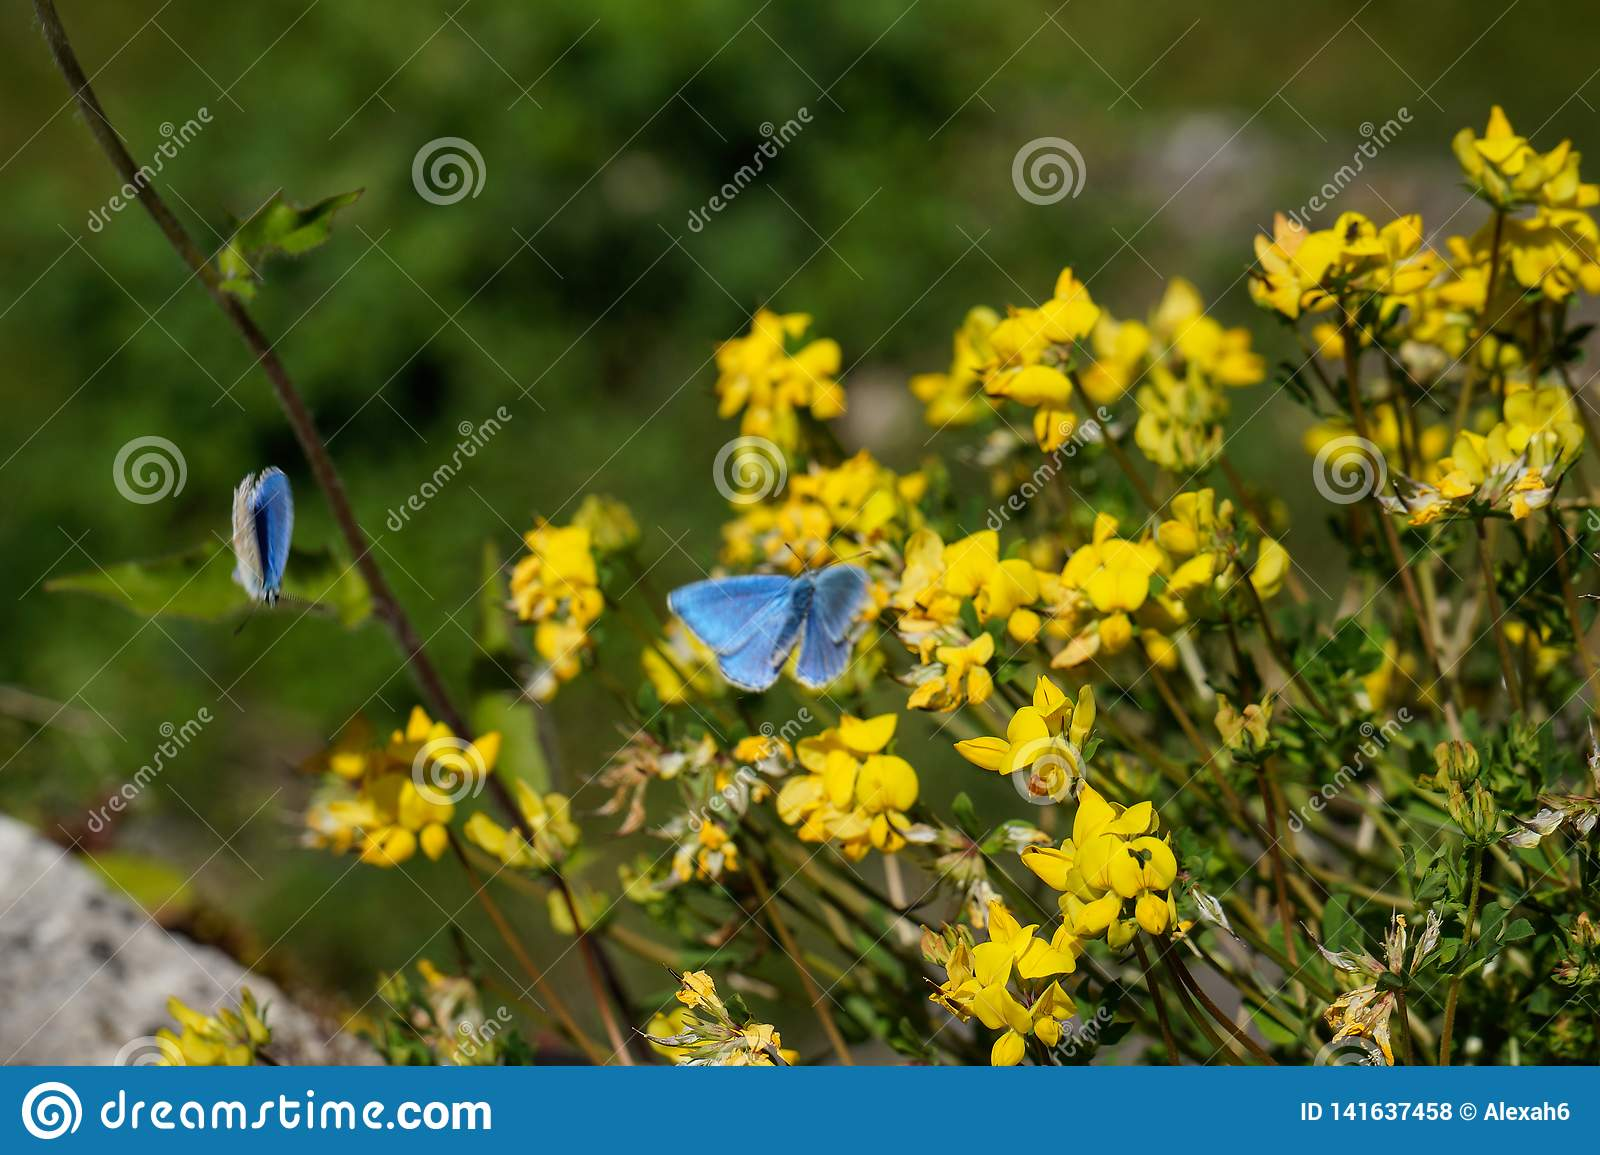 Blue crimean butterflies in front of yellow flowers